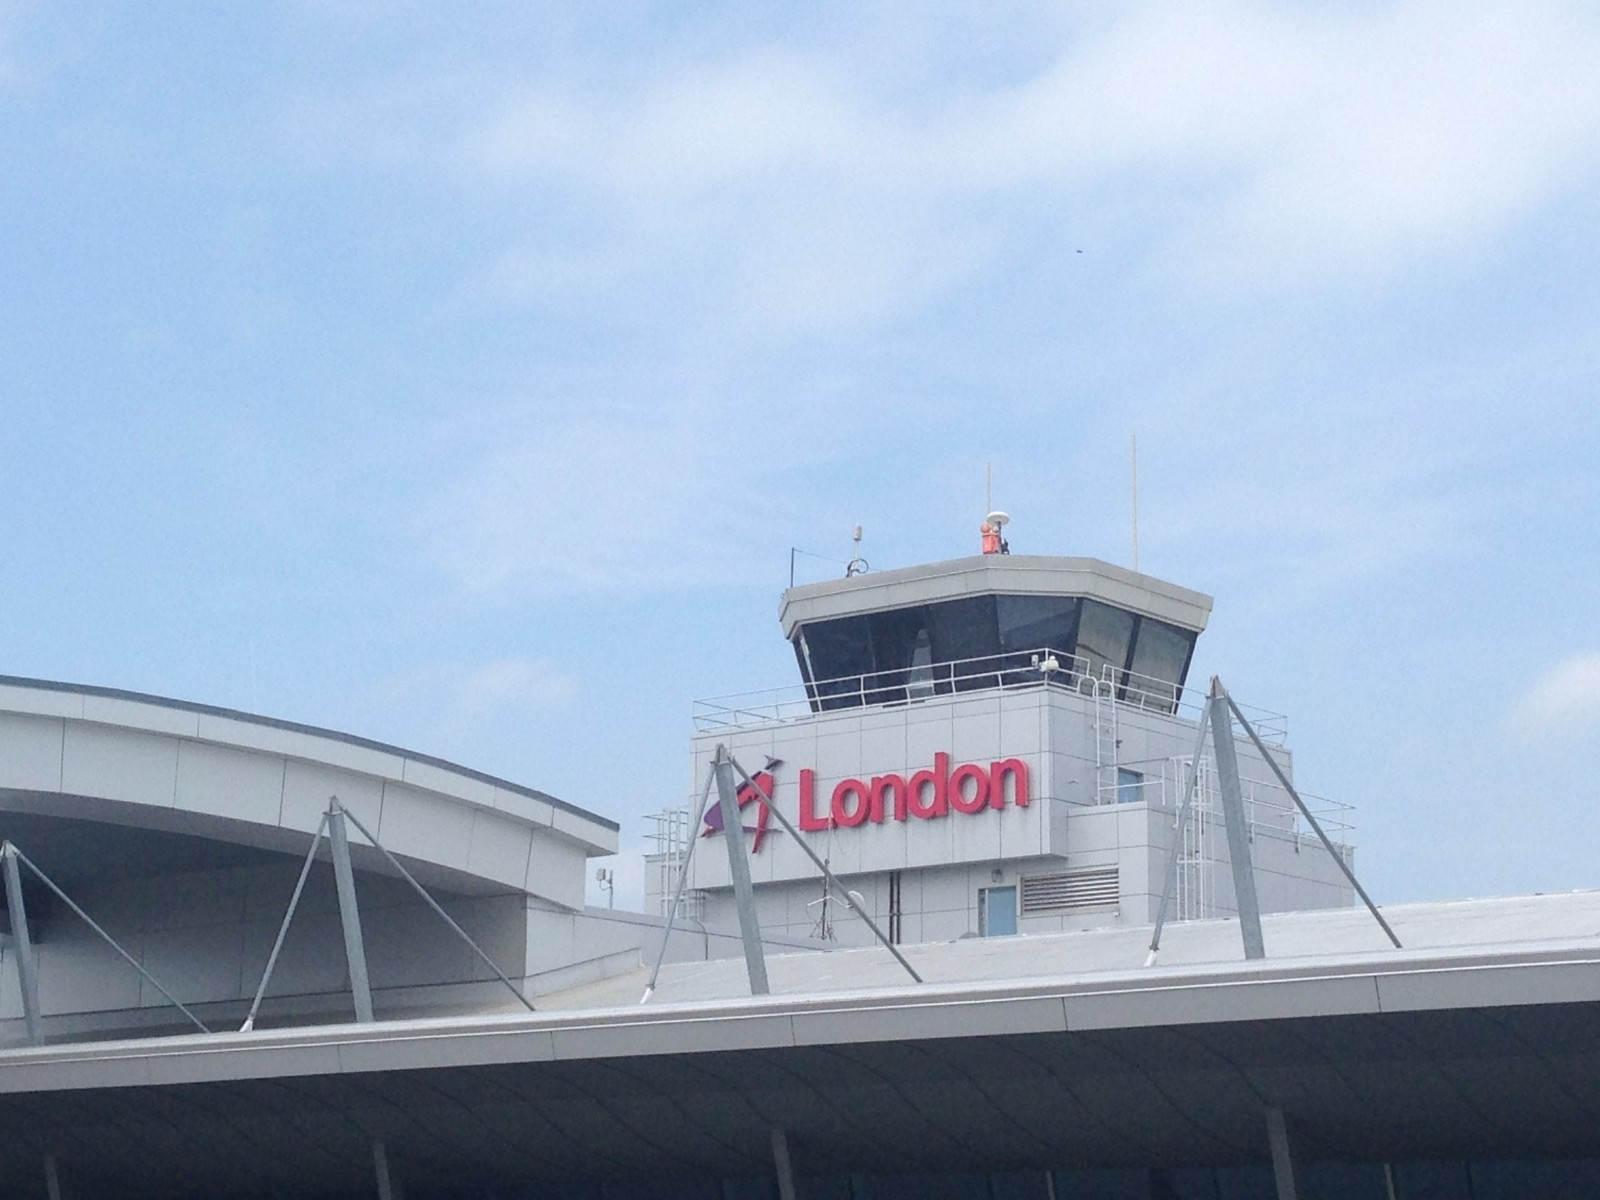 London Airport looking kick up customer service a notch